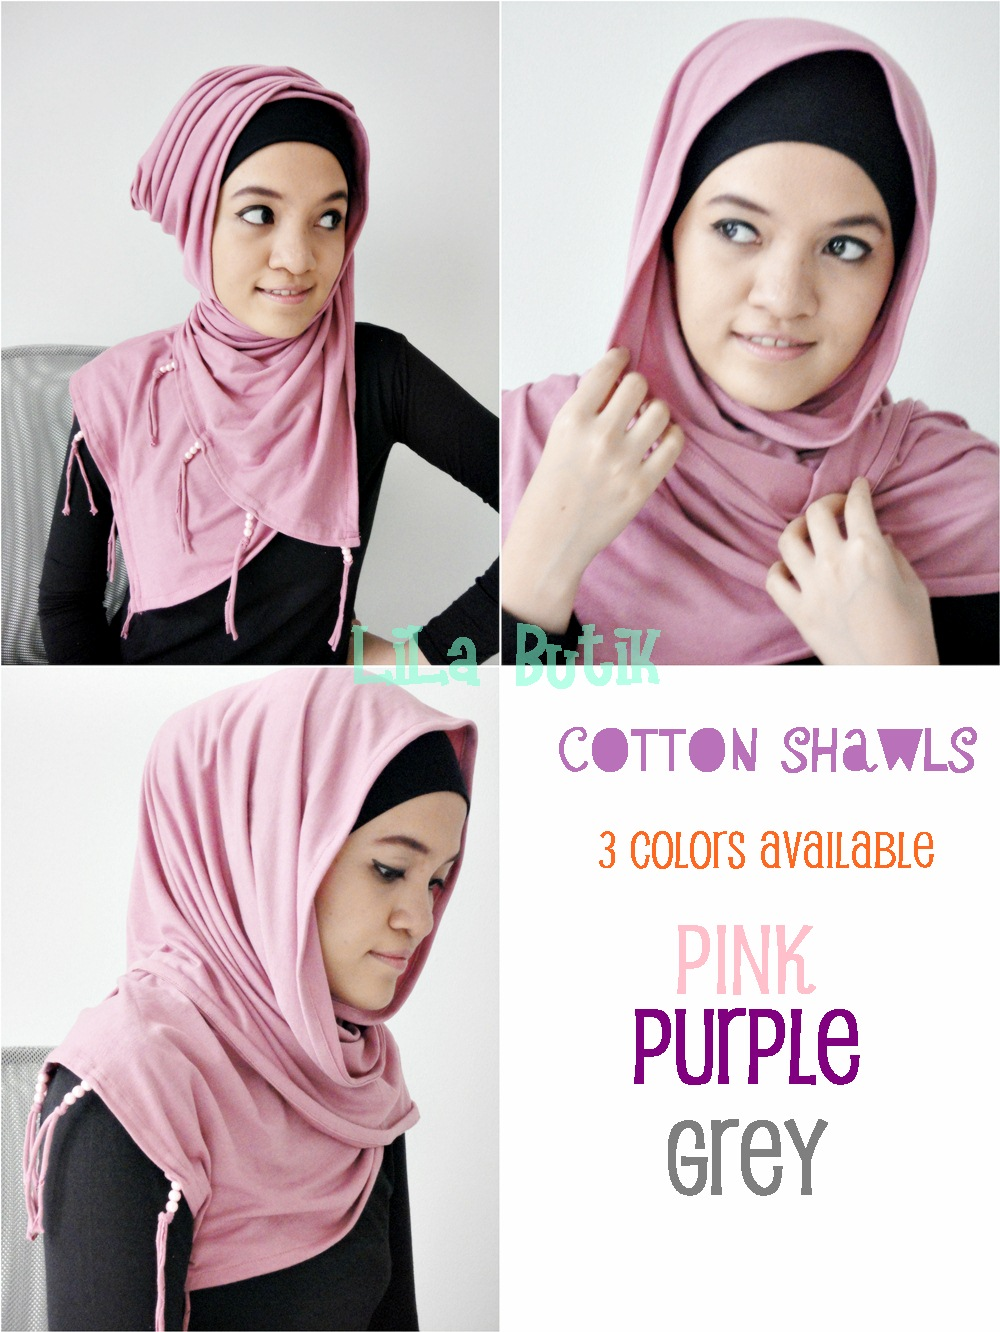 cotton-shawl LiLa Butik: Me and My Friend's On-and-Off Online Shop (^____^)v